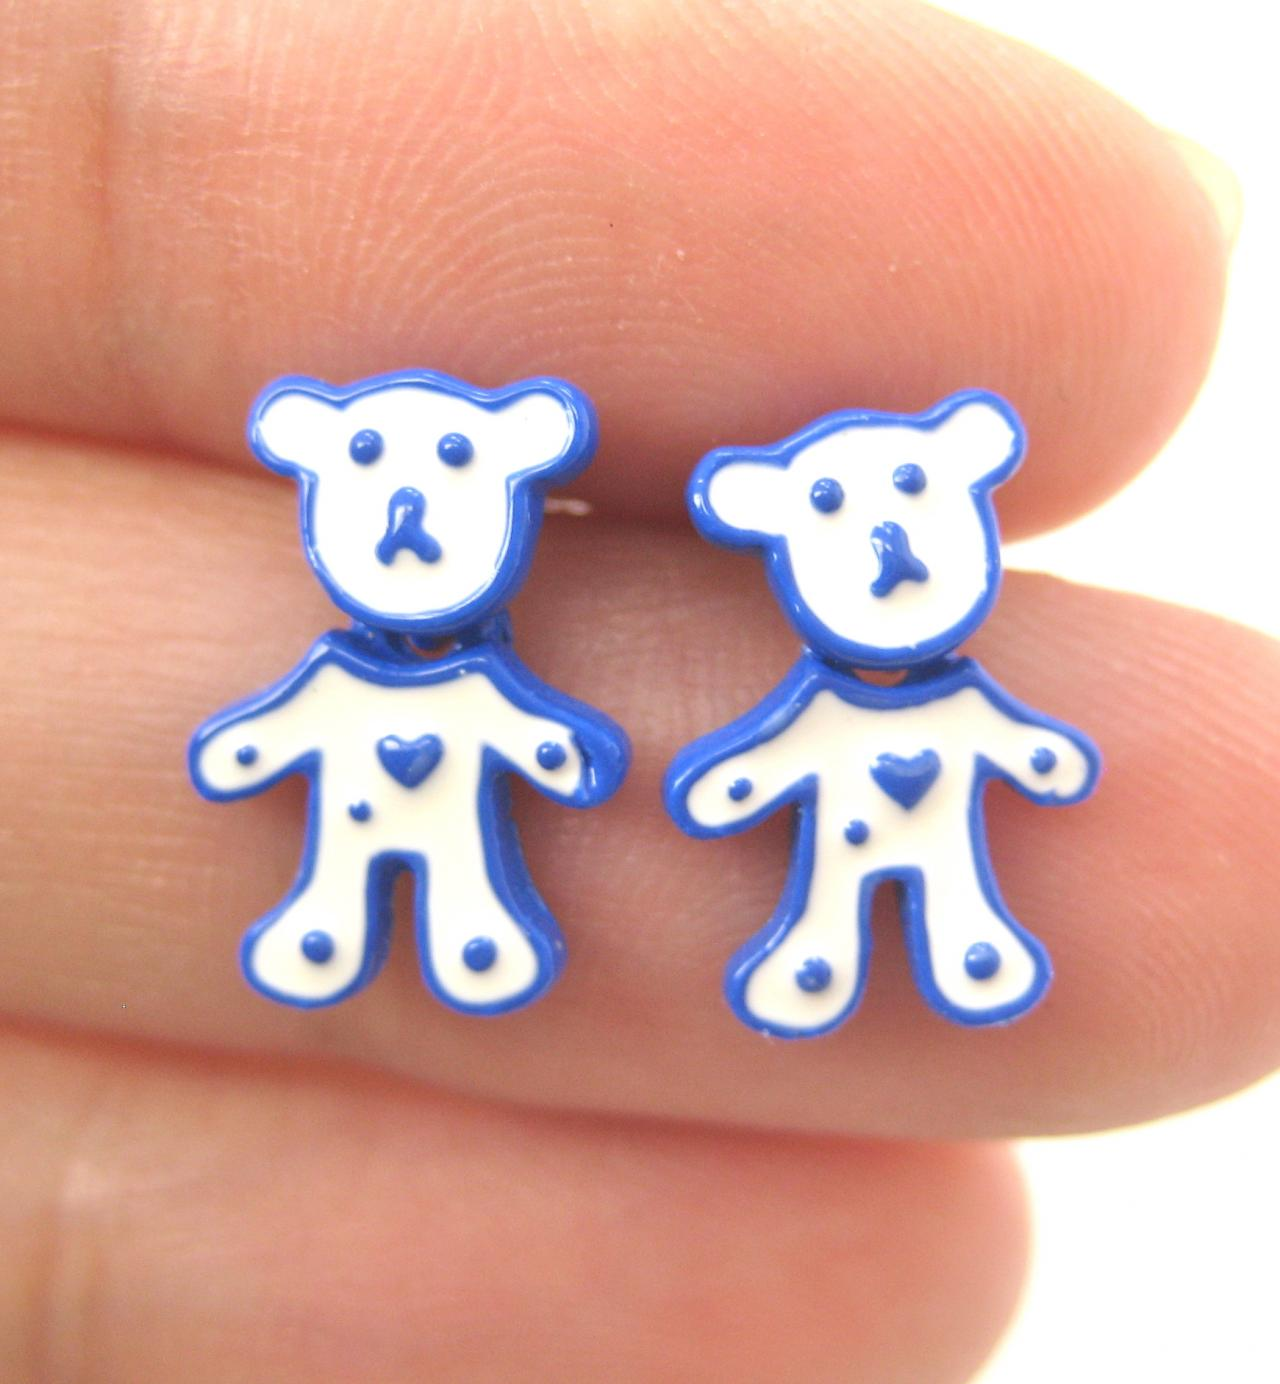 Teddy Bear Animal Stud Earrings in White on Blue - The Body Moves!